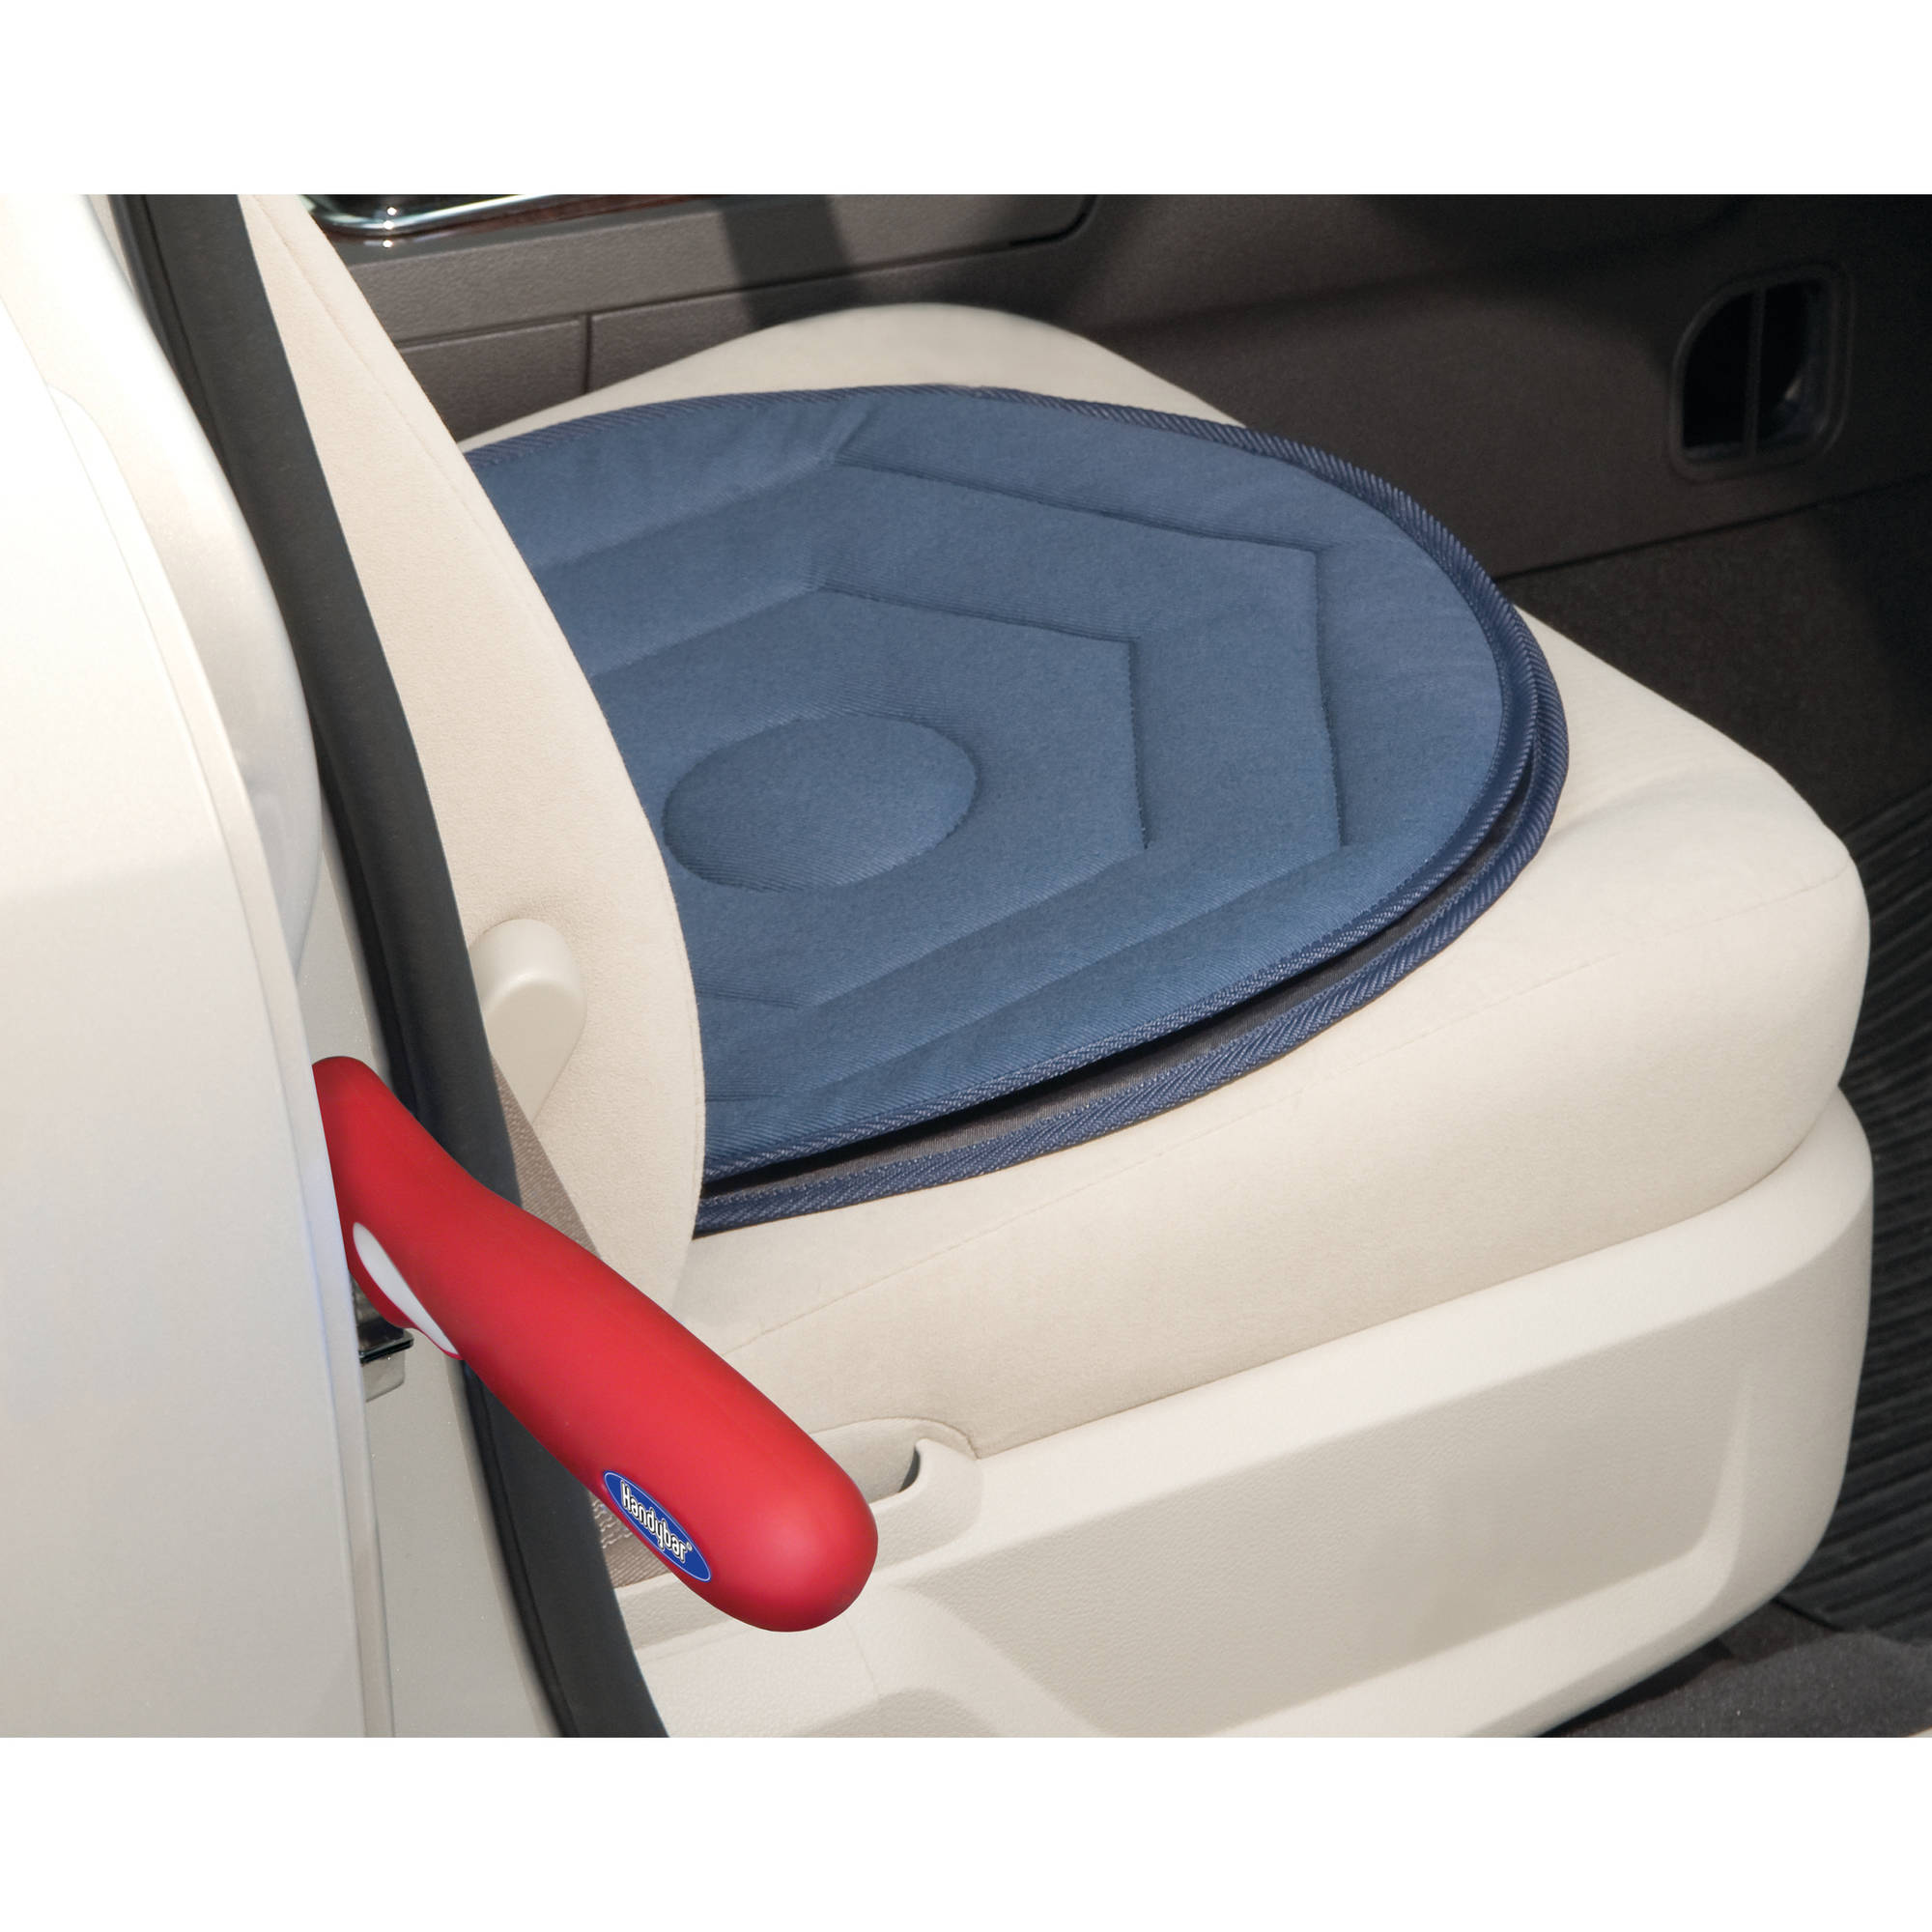 Automobility Solution- 2 in1 HandyBar & Swivel Seat Cushion Combo